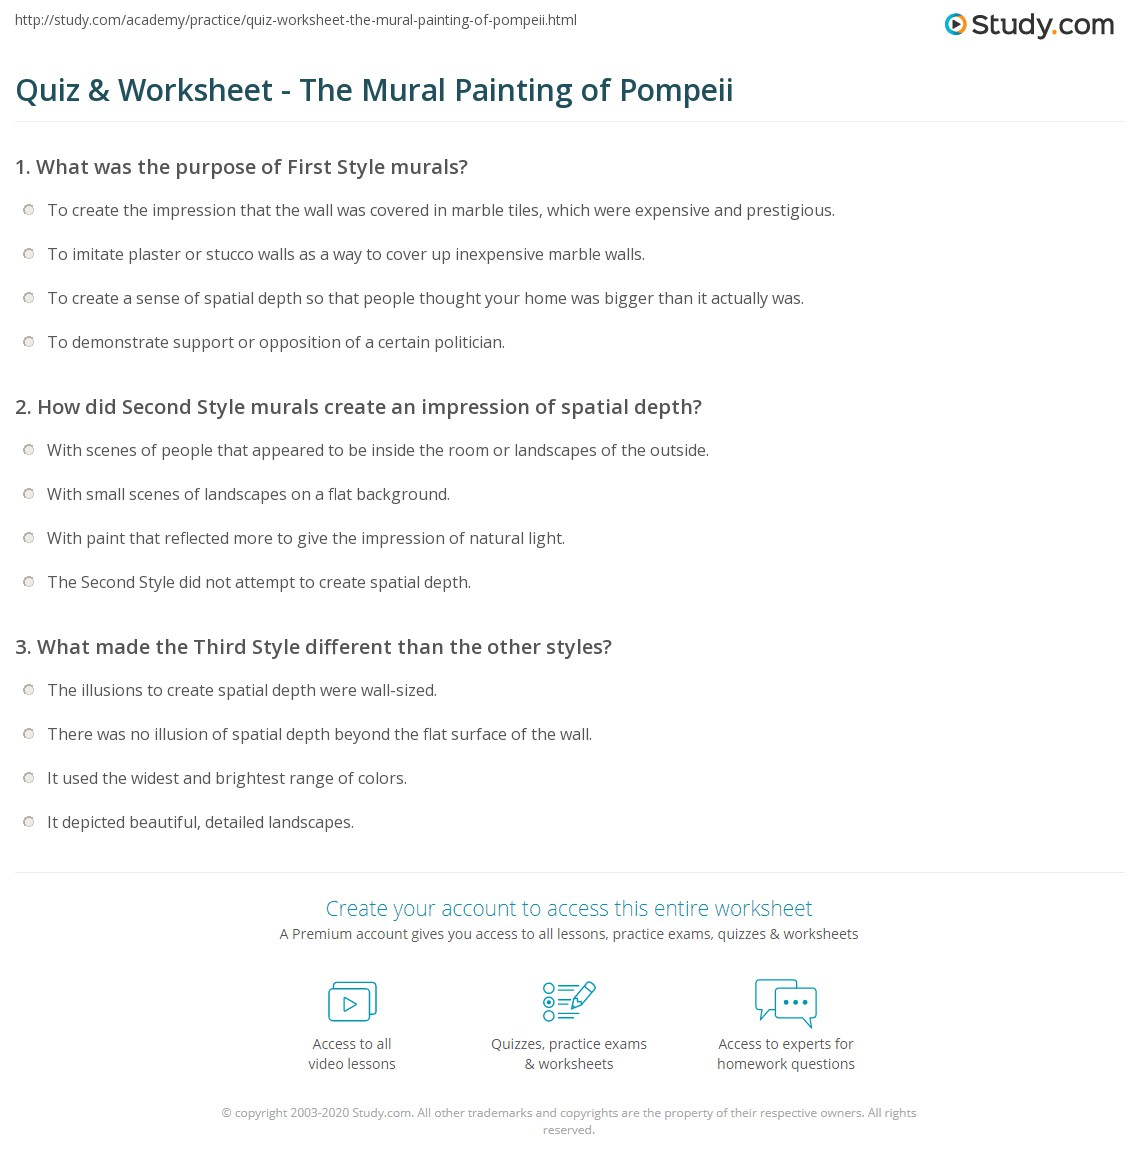 Quiz & Worksheet - The Mural Painting of Pompeii | Study.com